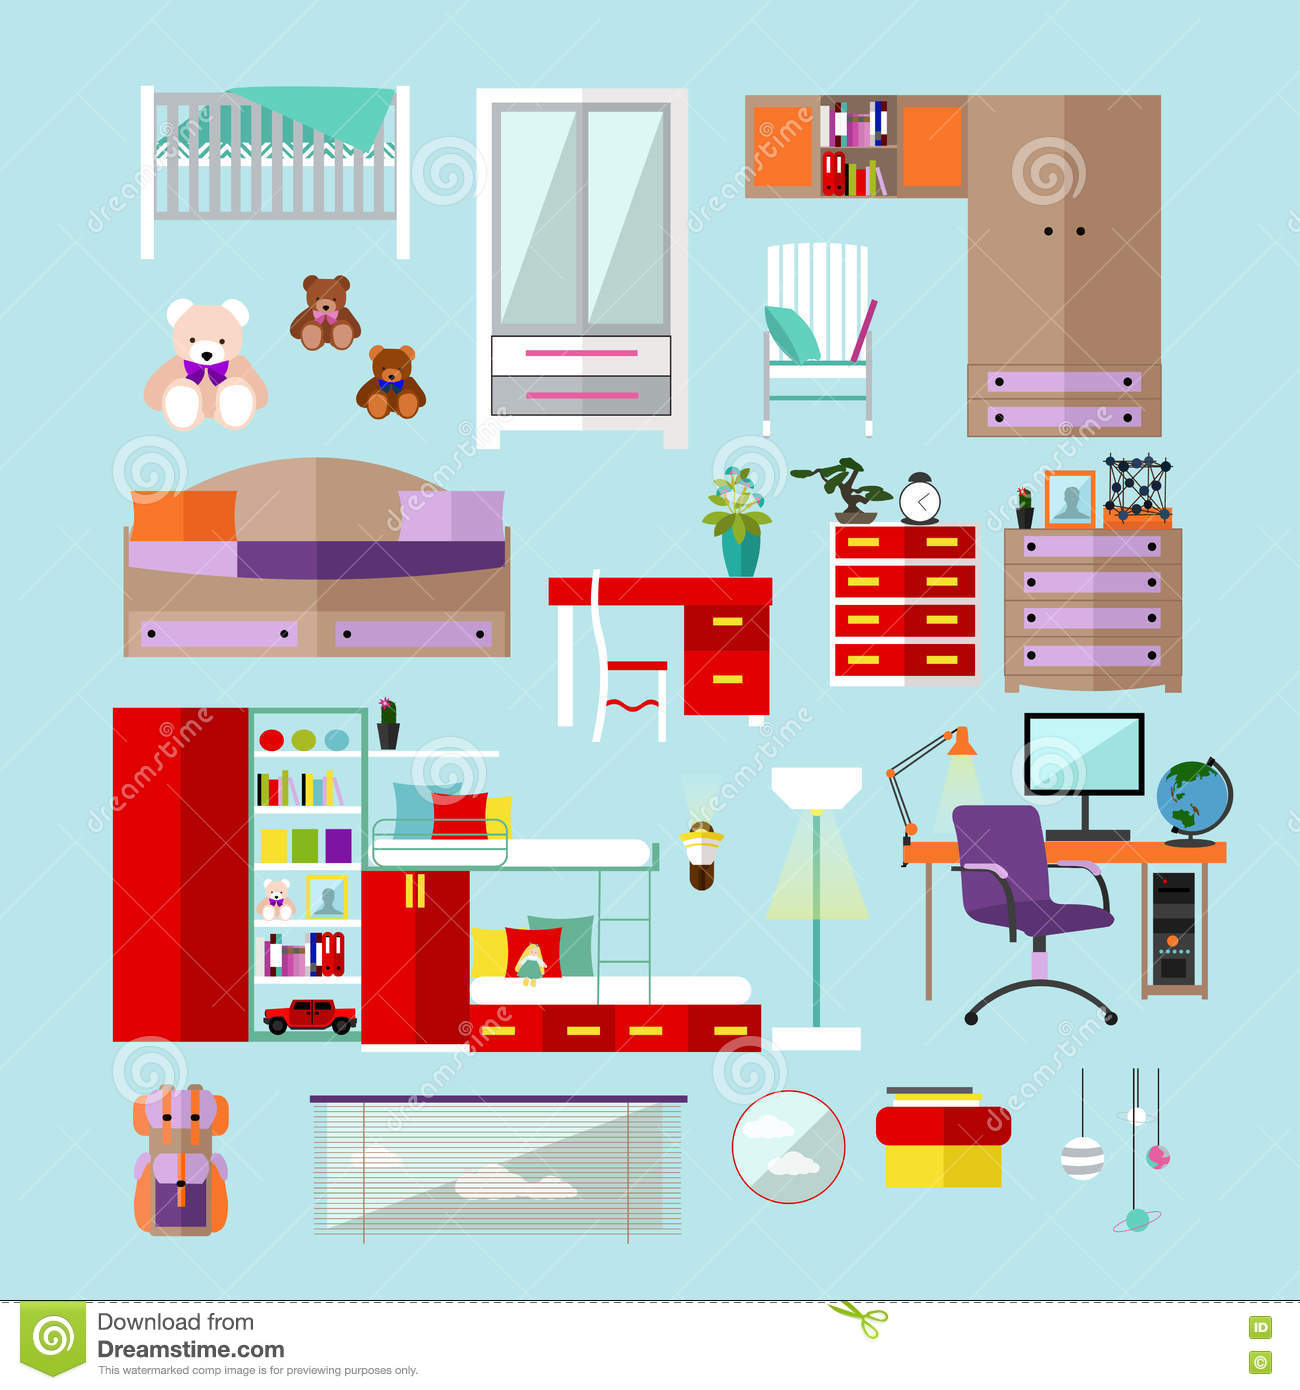 Kids bedroom interior objects in flat style vector for Room design vector